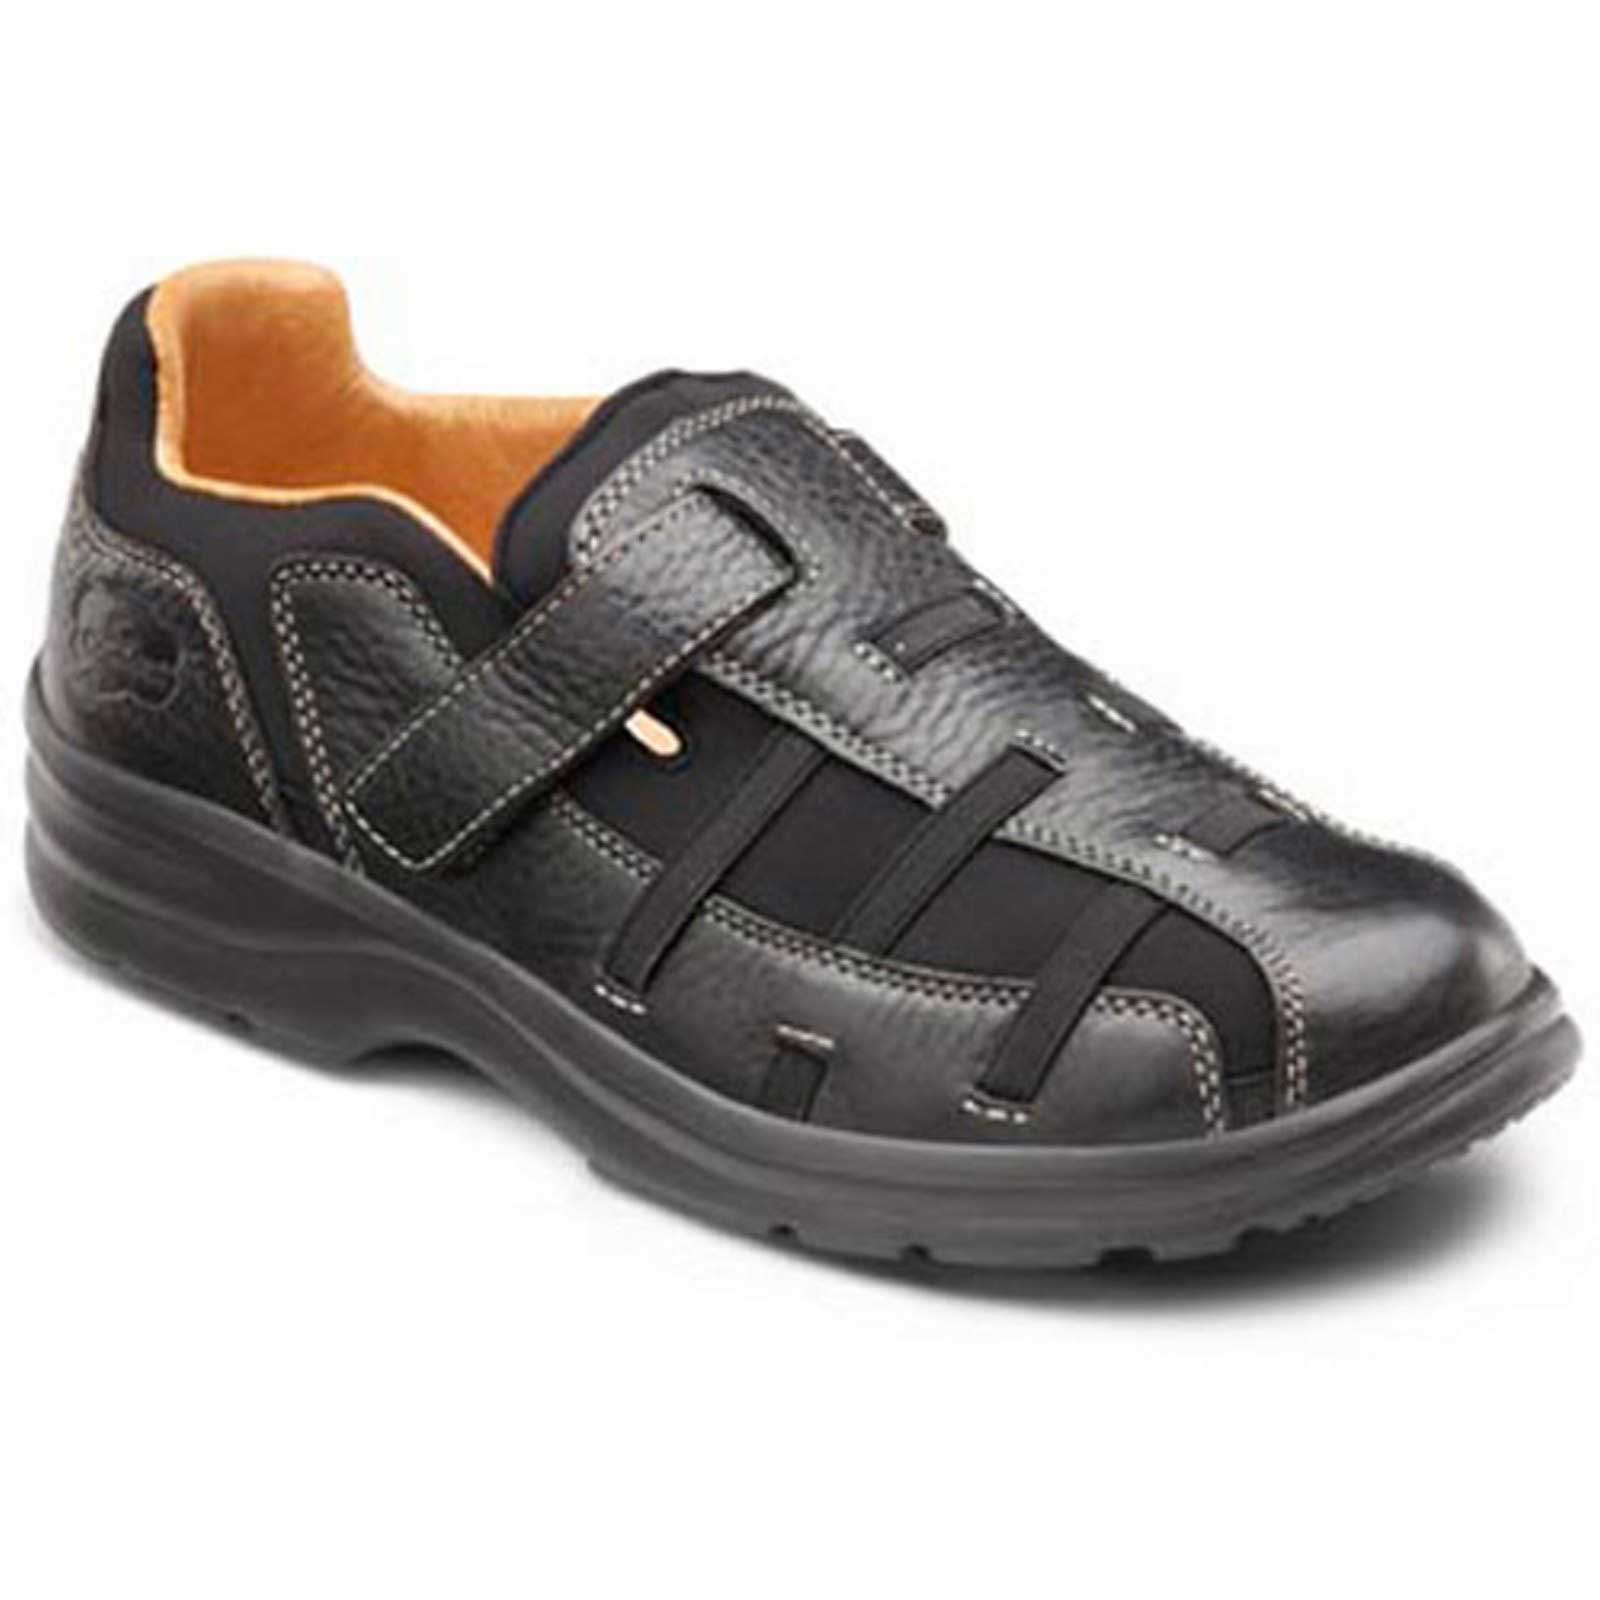 visit store innovate comfort shoes men s shoes women s shoes